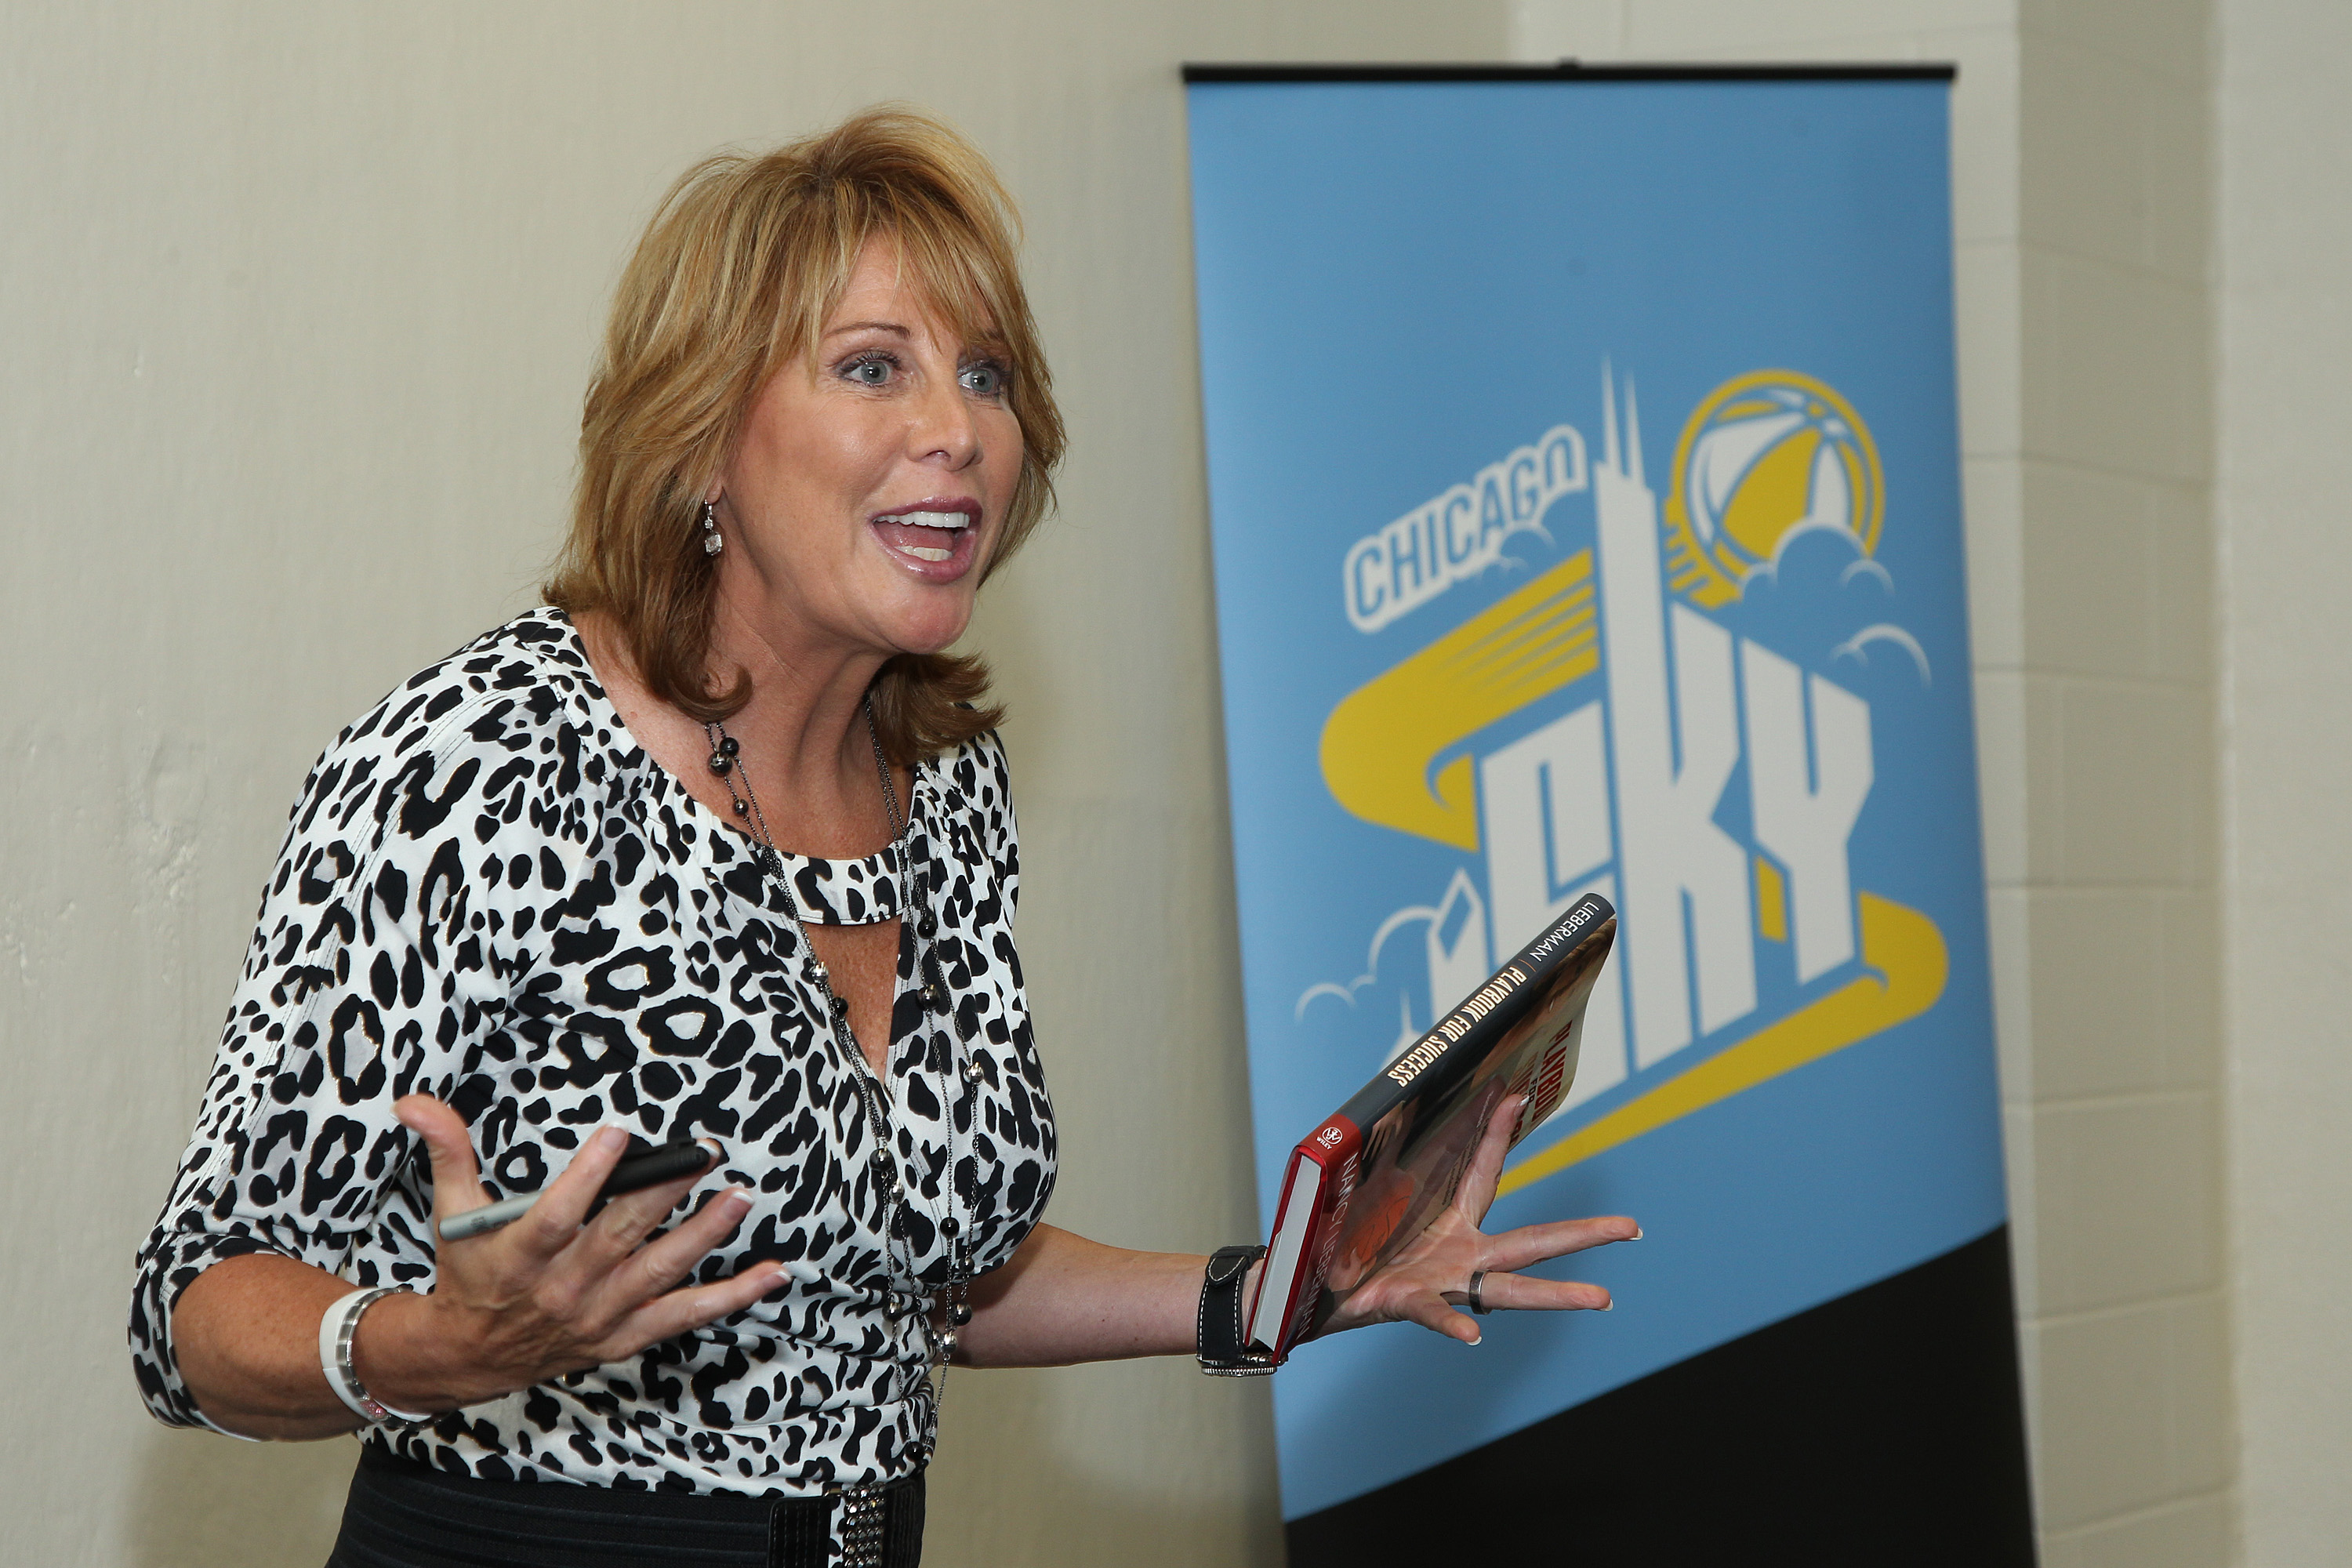 ROSEMONT, IL - JULY 26: Nancy Lieberman, Women's Hall of Famer  and head coach of the NBA Development League Texas Legends addresses attendees of special Chicago Sky pre game event prior to the start of the WNBA game against the Connecticut Sun on July 26